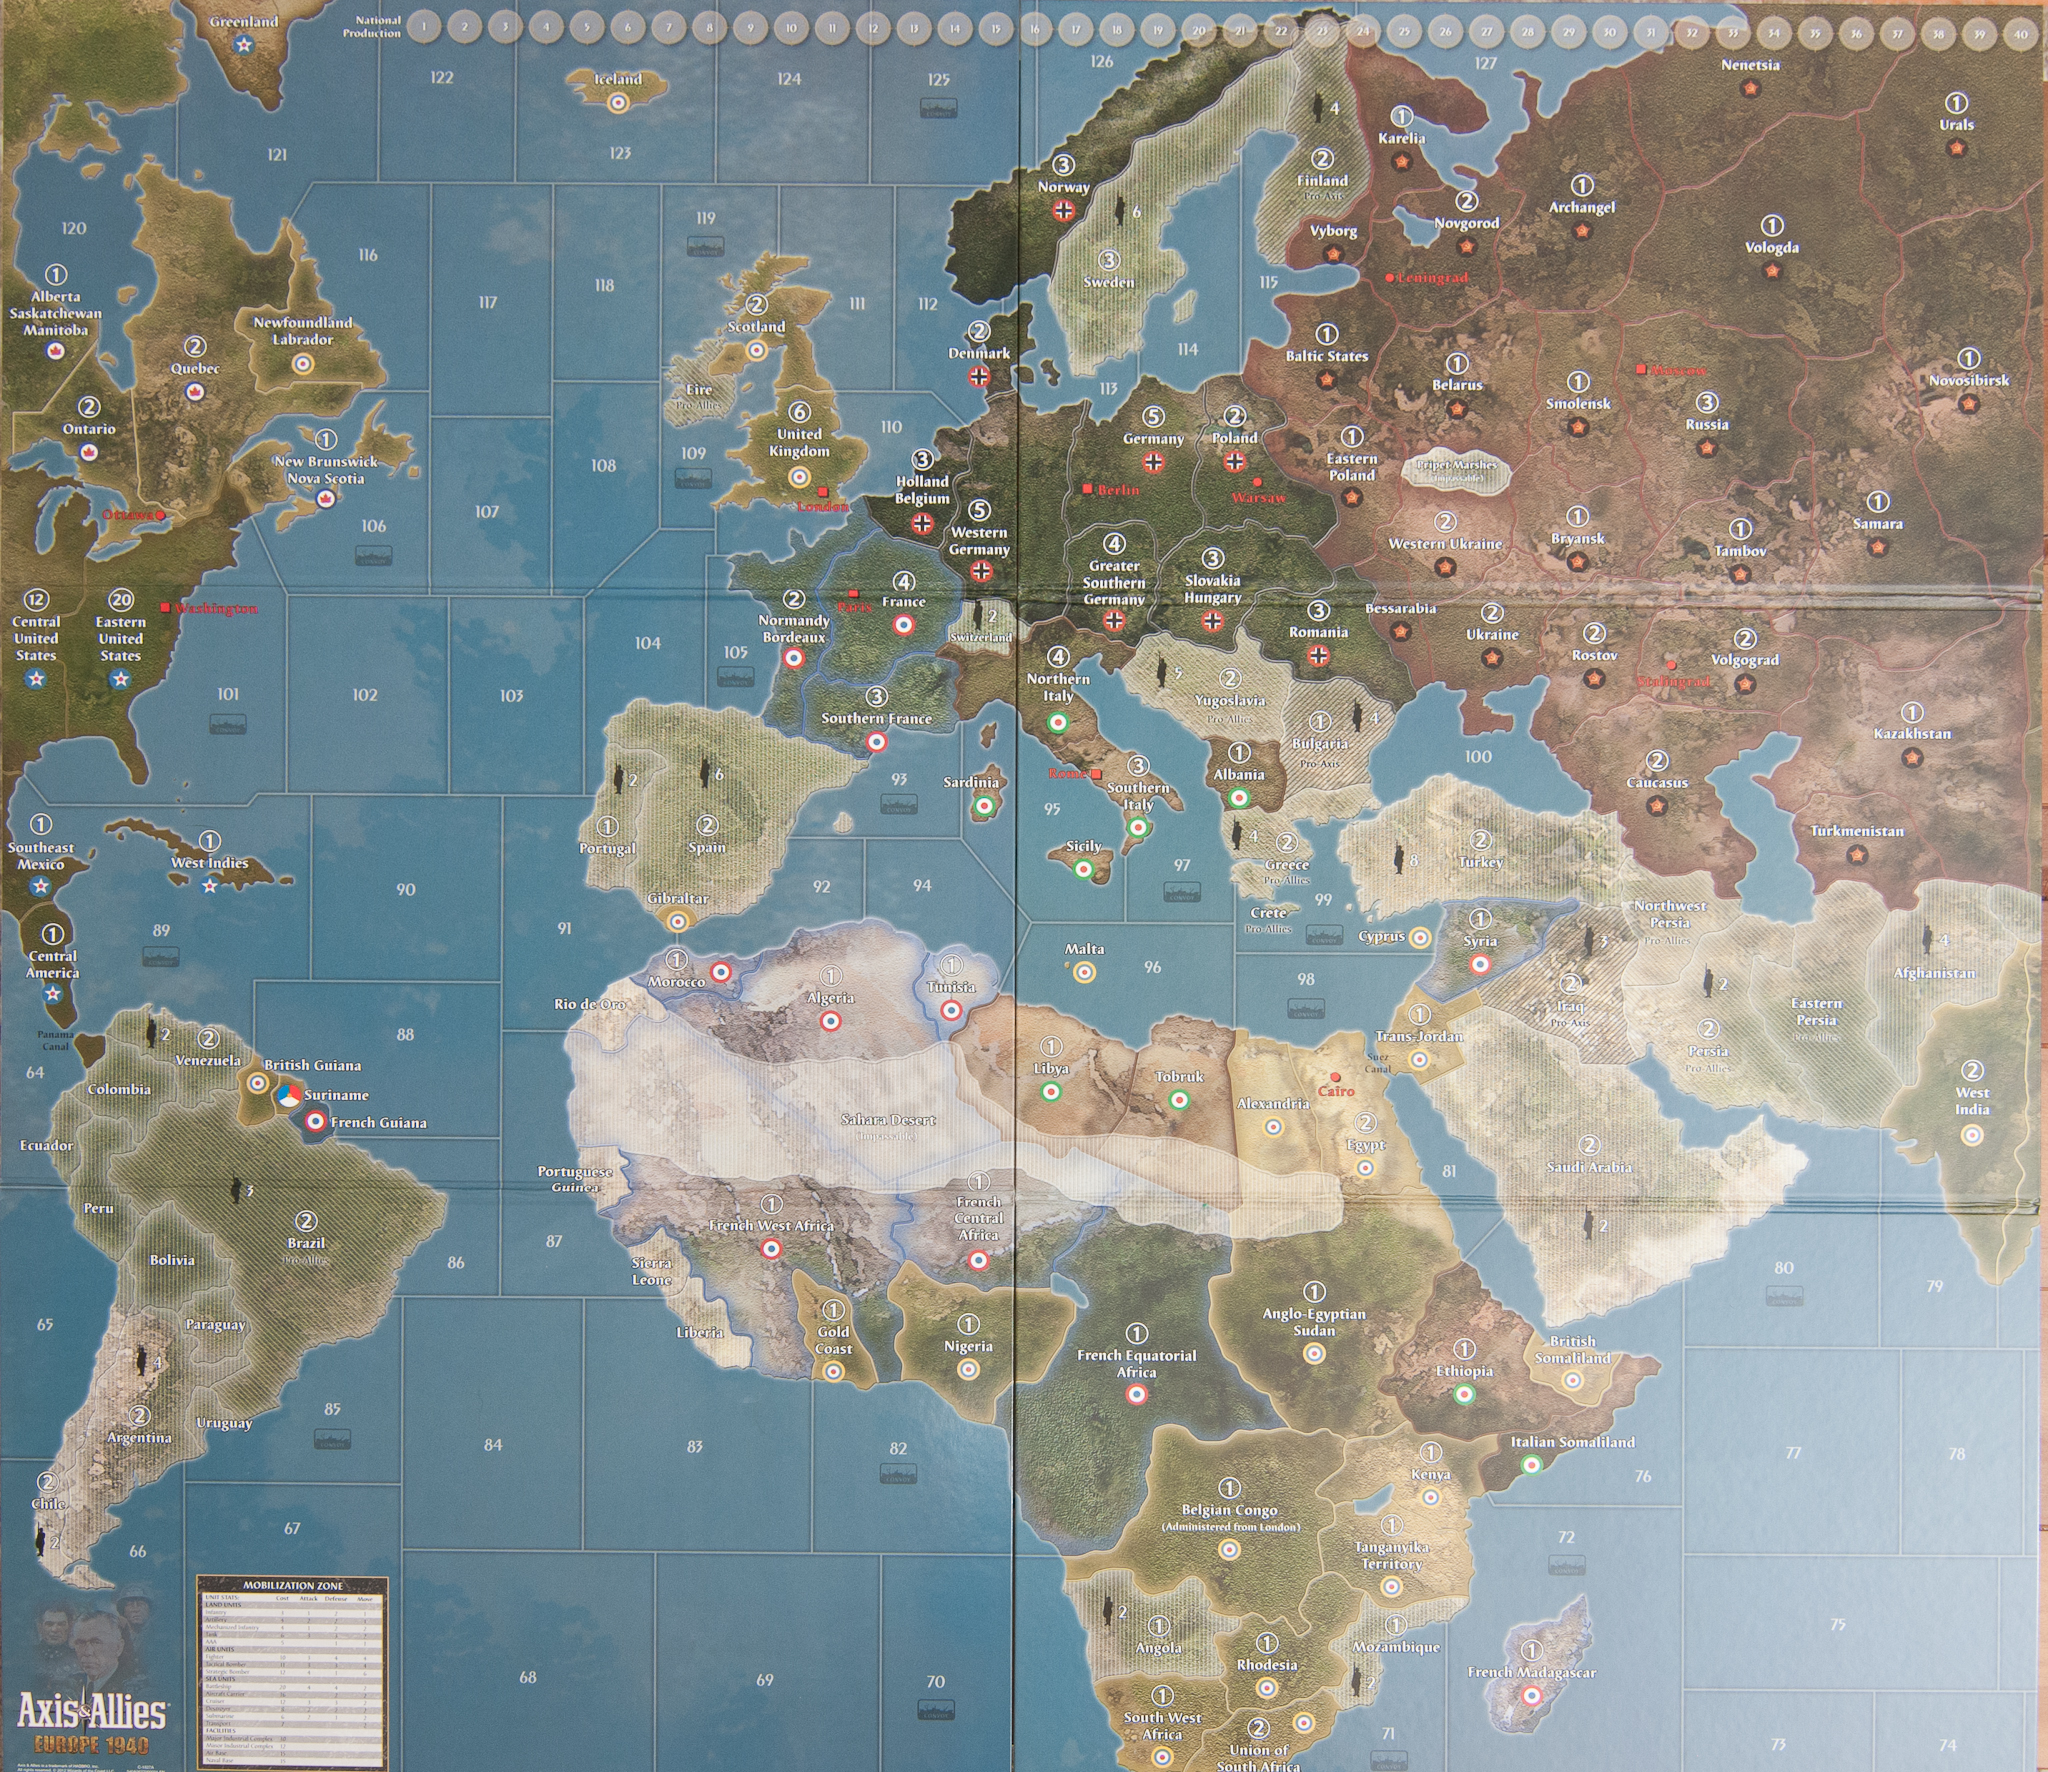 Us Allie Map Globalinterco - Worls map of us and it allies